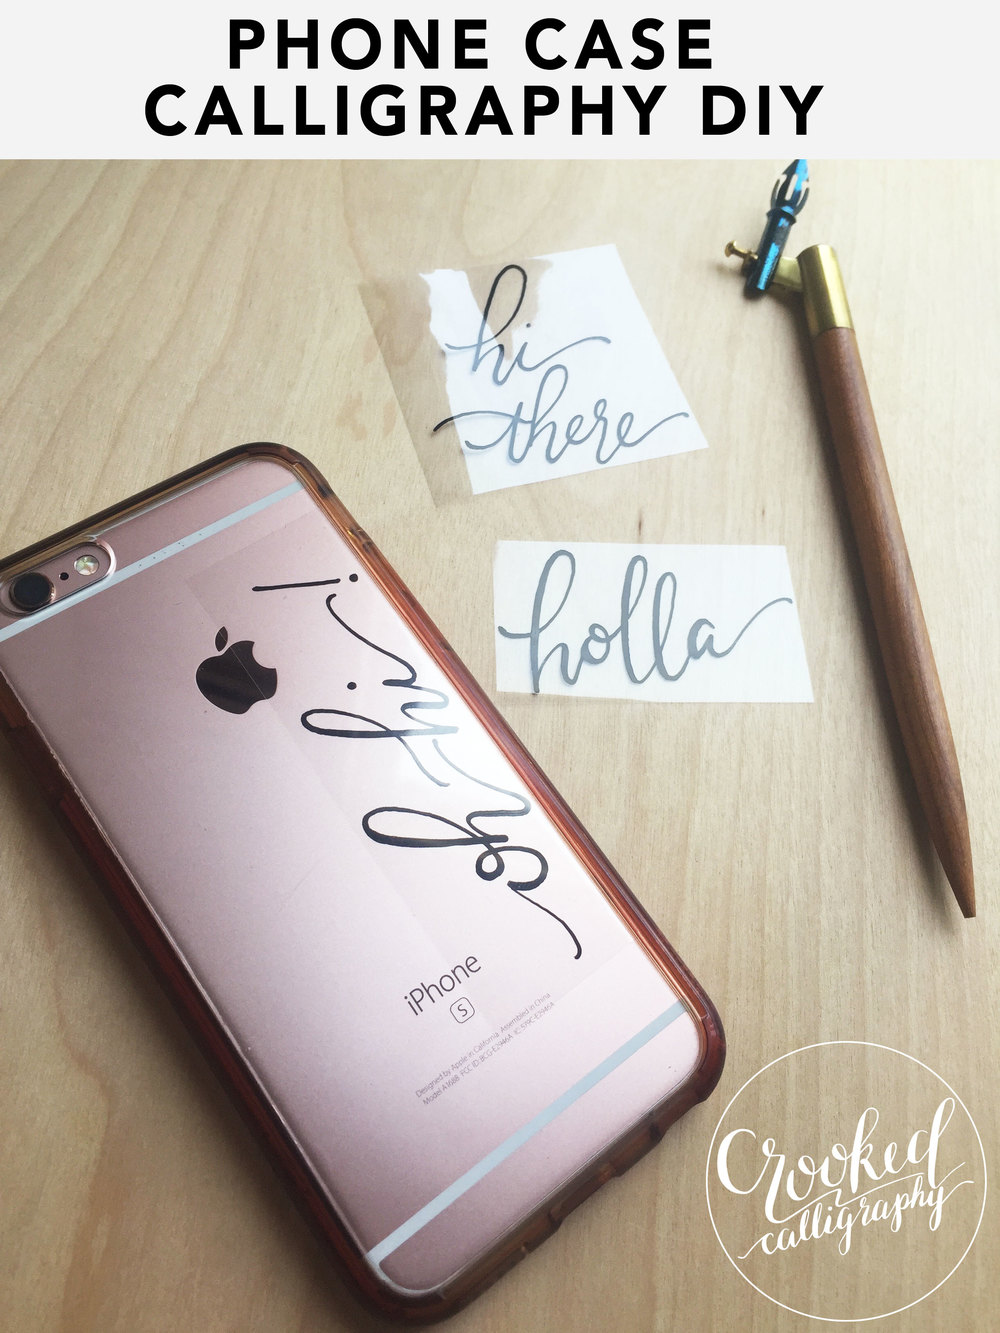 DIY Calligraphy Phone Case (Crooked Calligraphy)